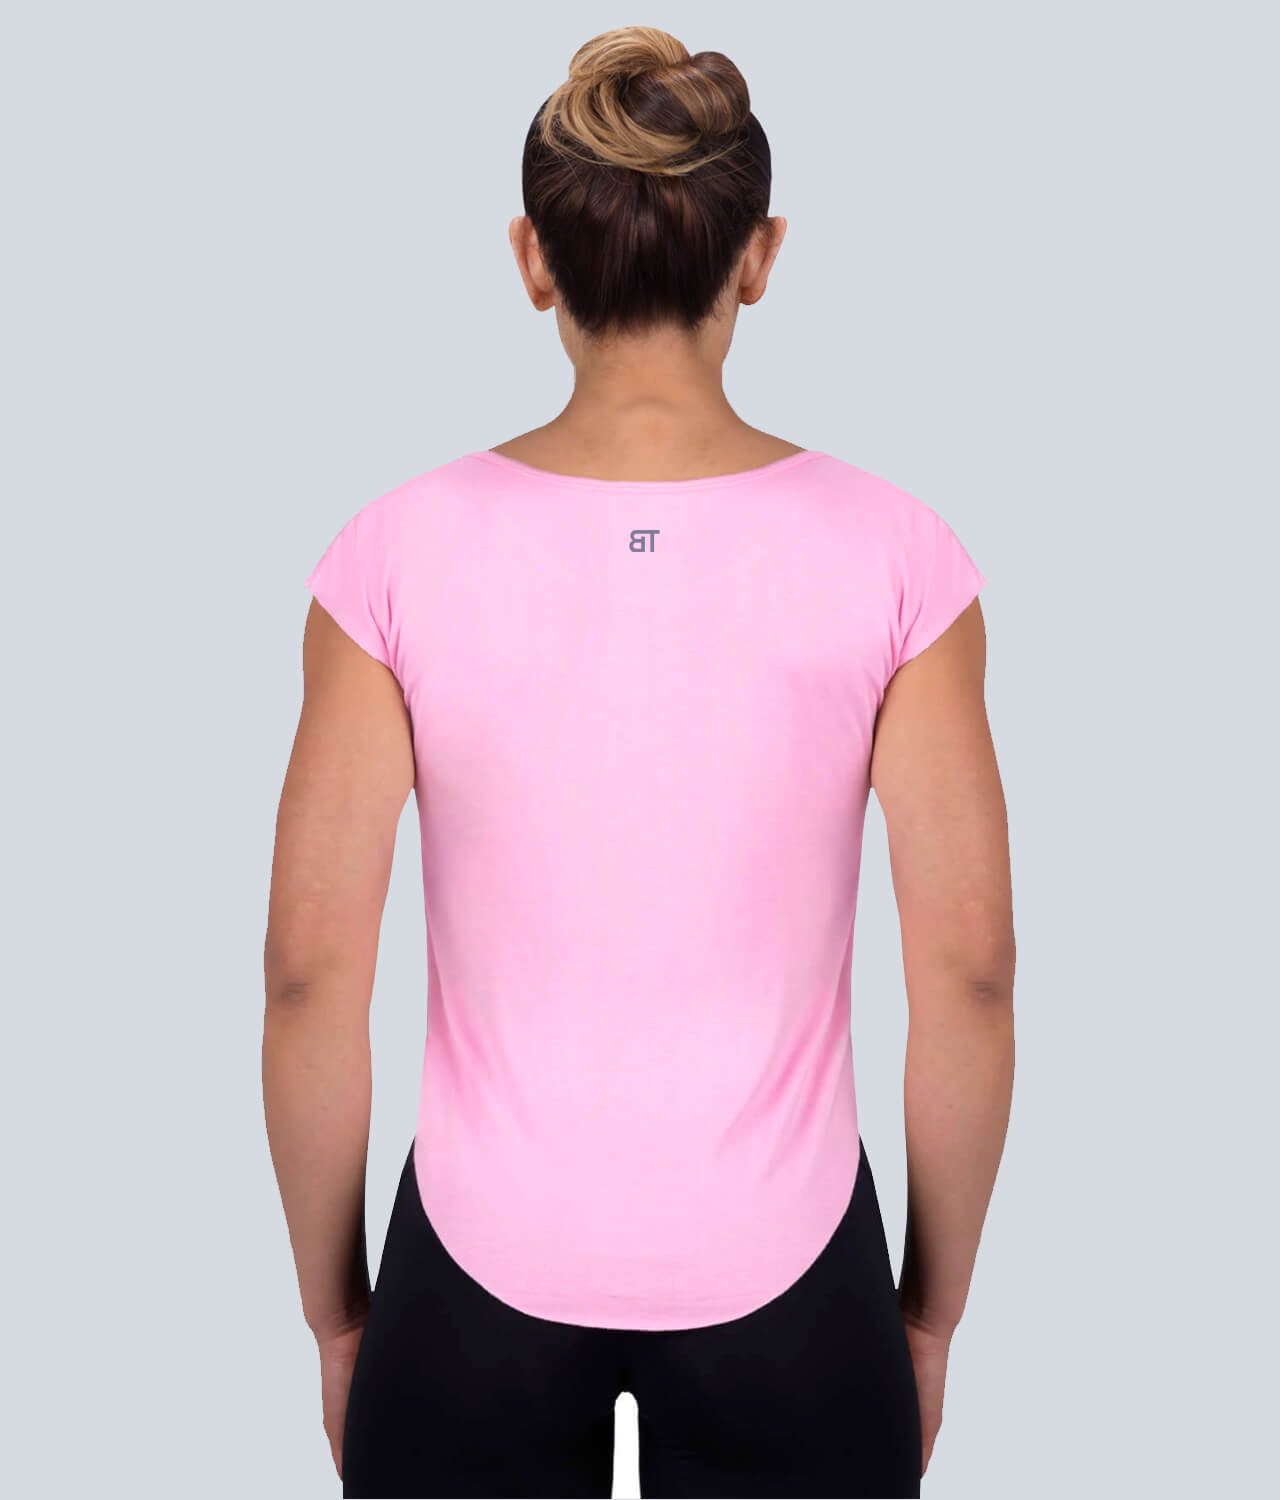 Born Tough Capped Sheer Accentuated Seams Pink Sleeveless Gym Workout Shirt for Women